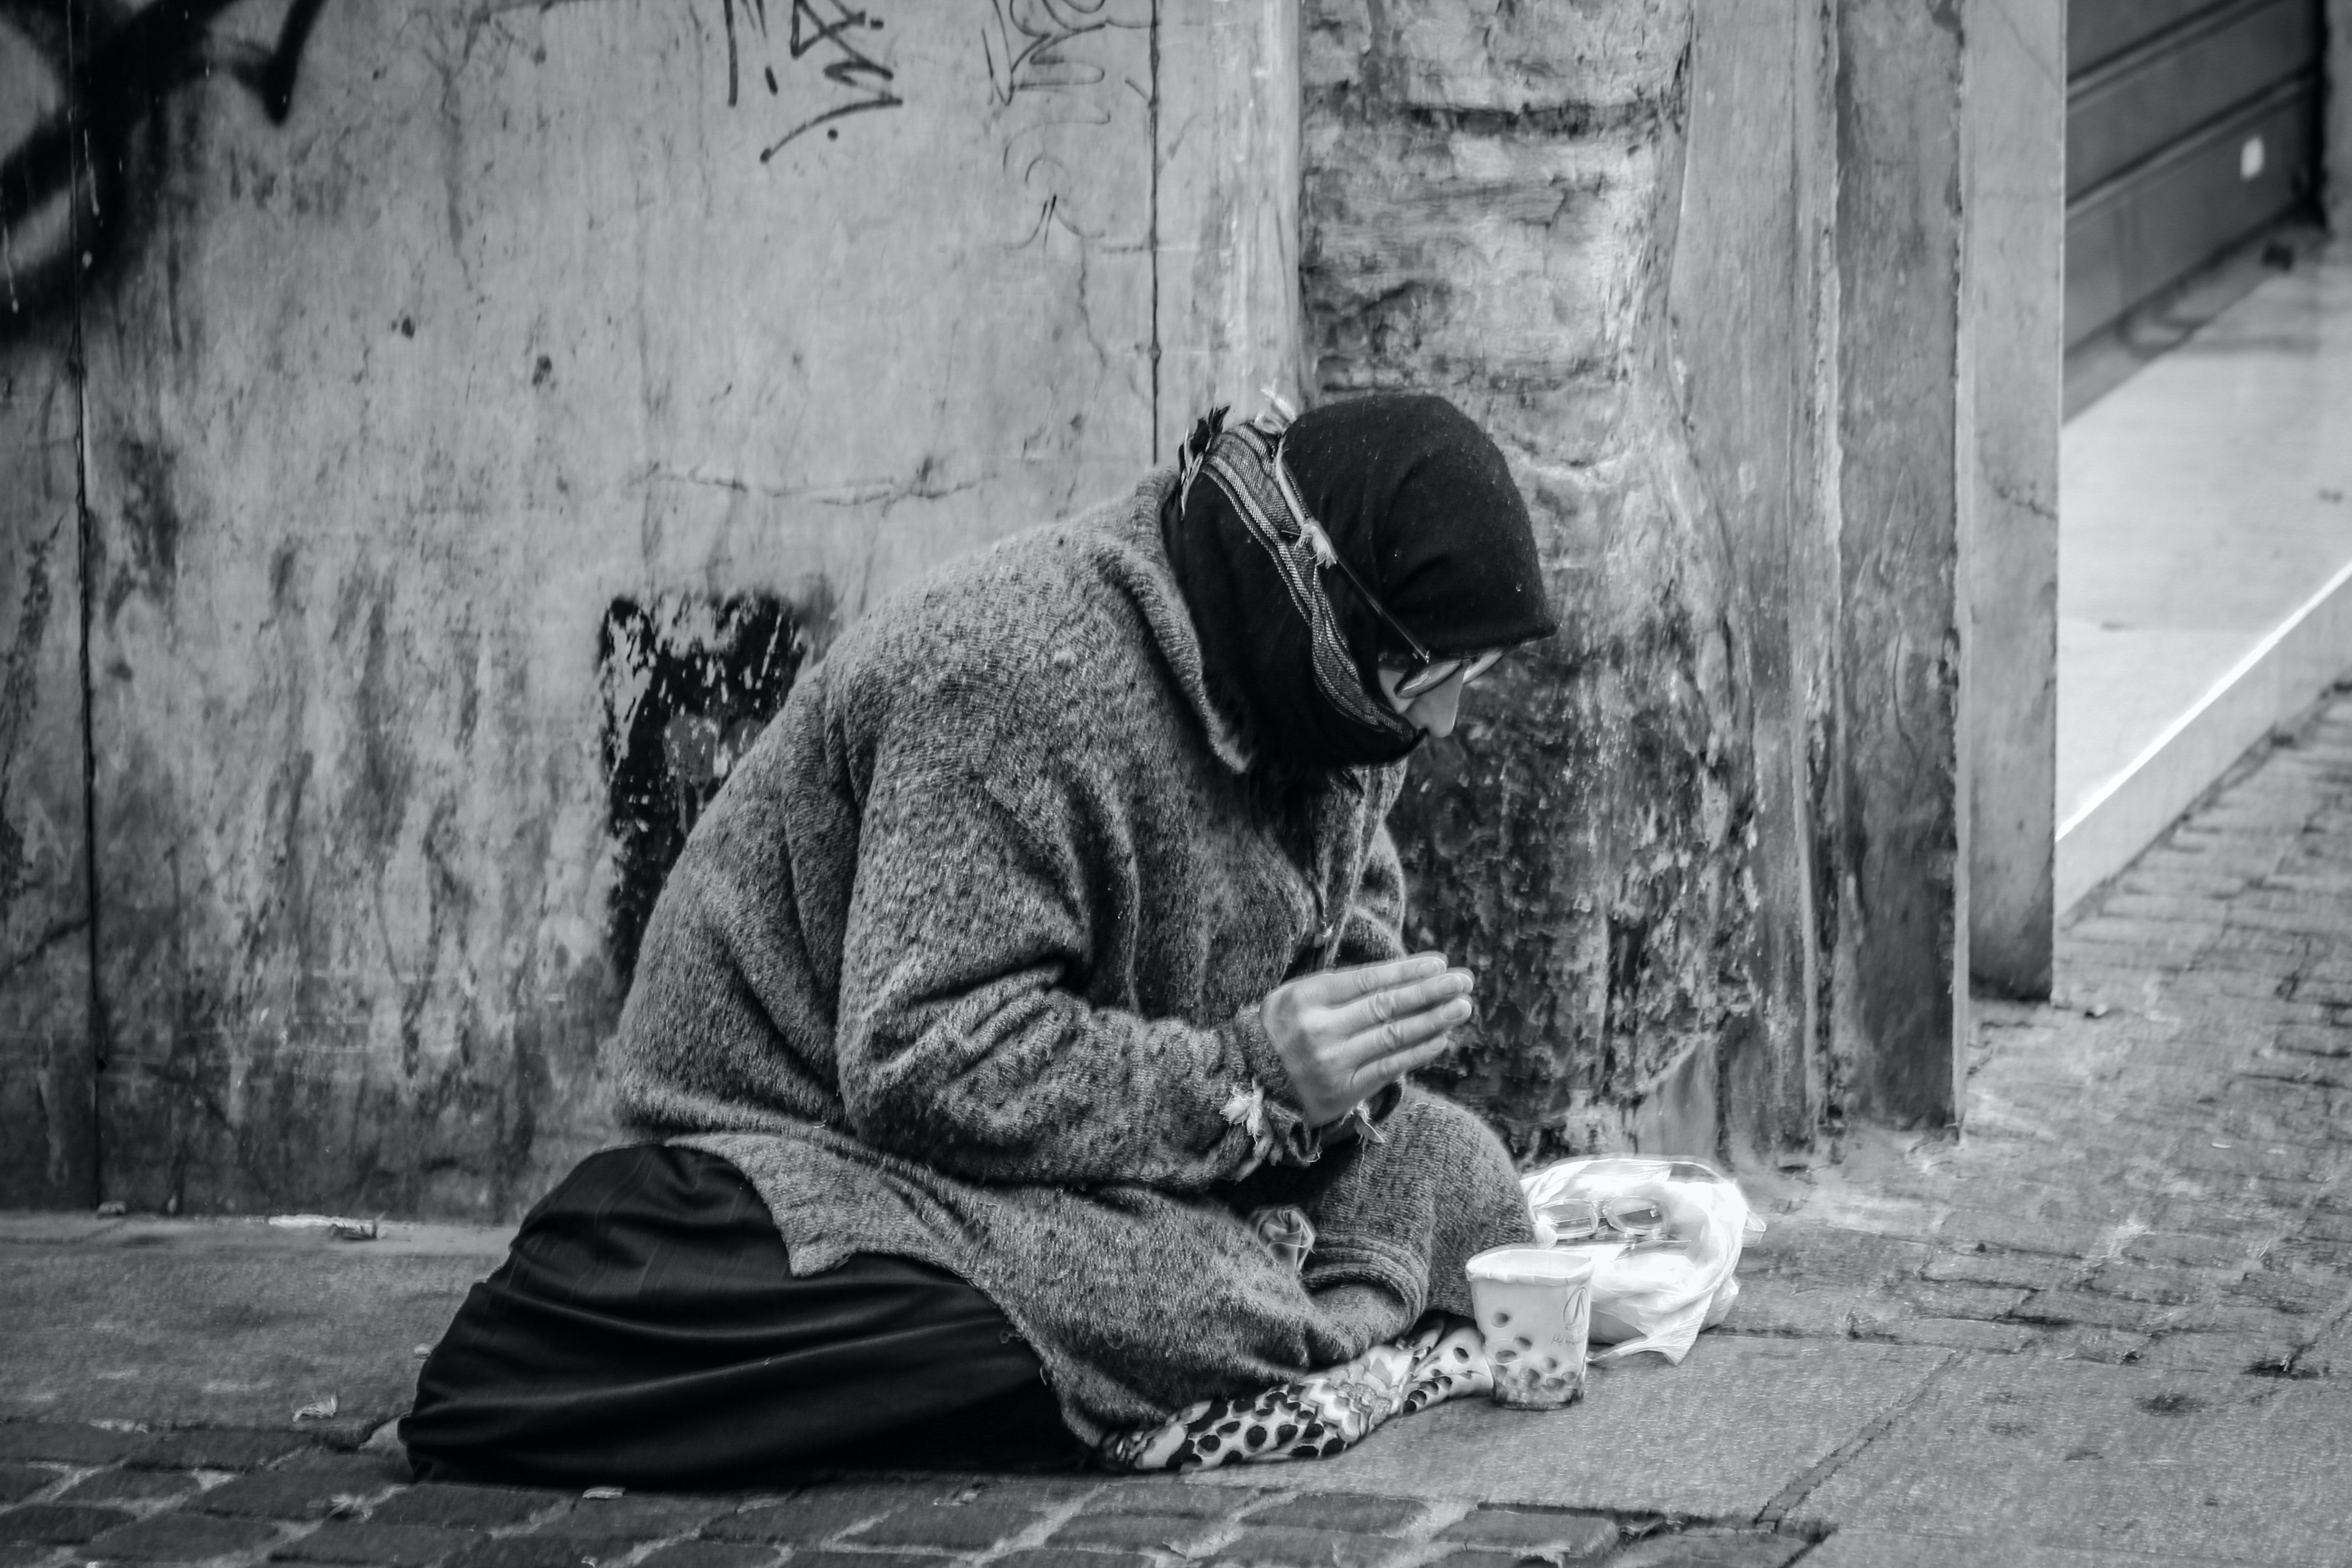 Homeless man on the side of the road | Photo: Pexels